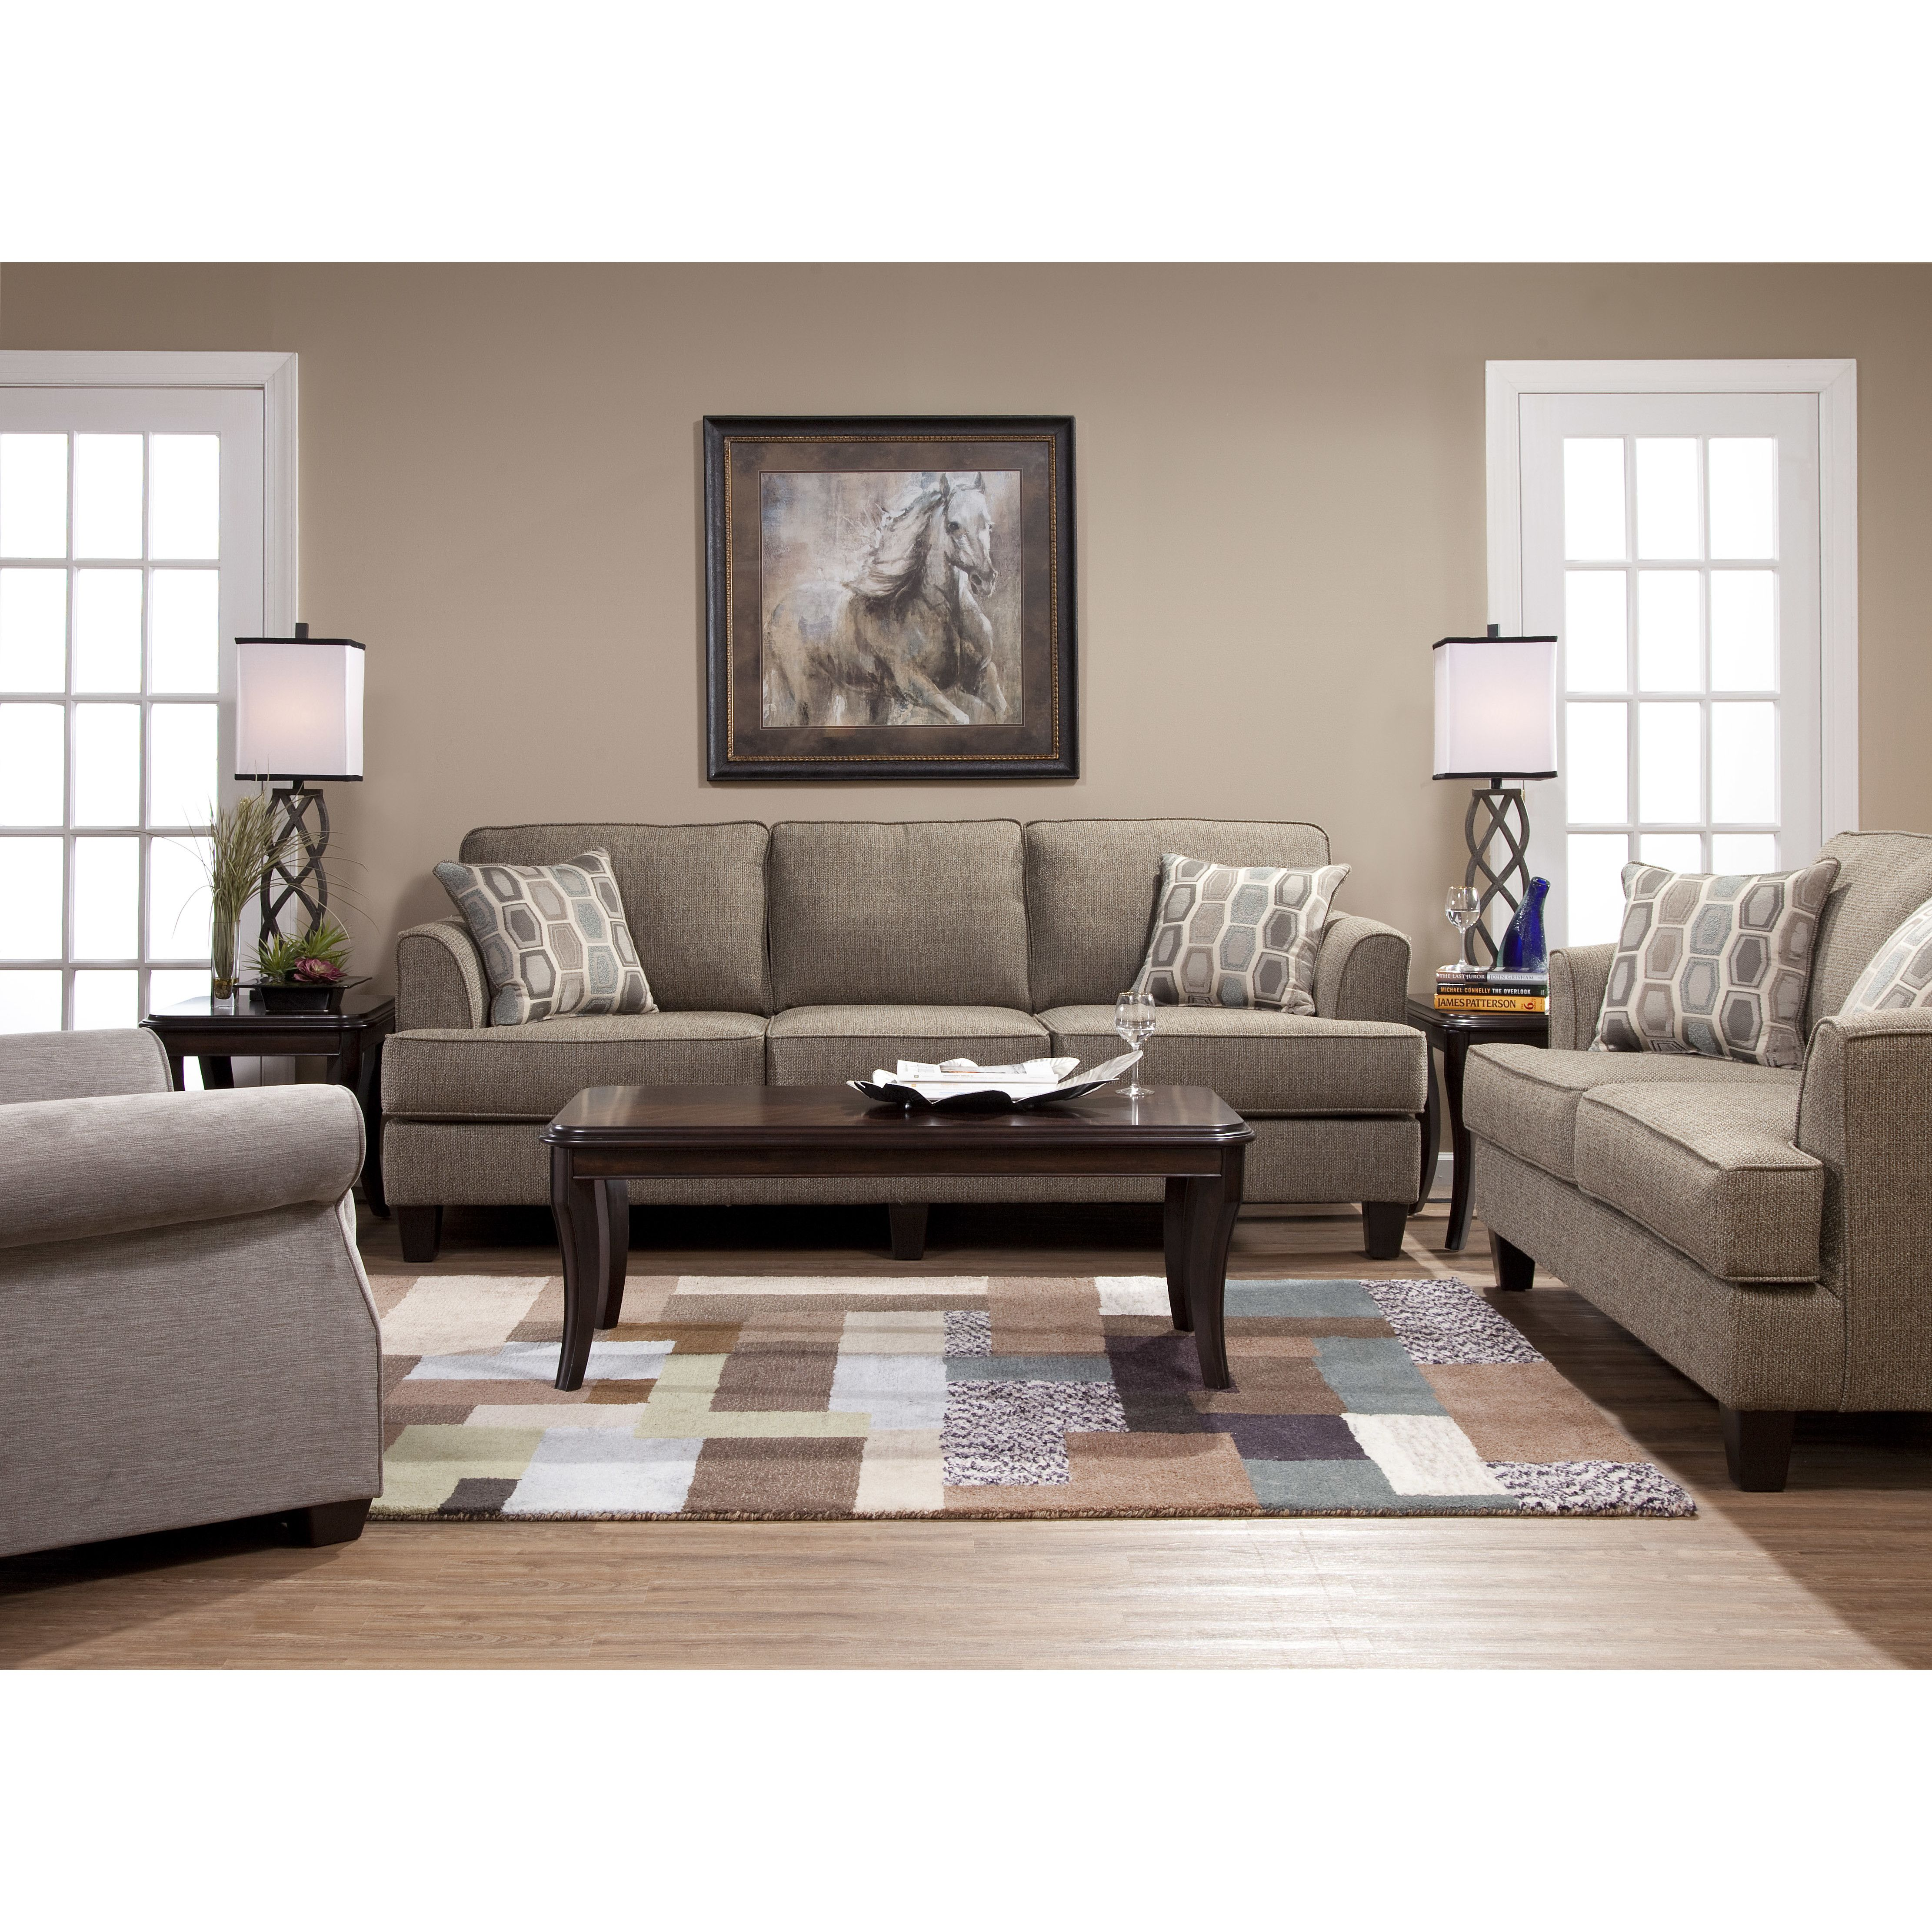 colders living room furniture. Colders Living Room Furniture - Design Ideas For Small Rooms